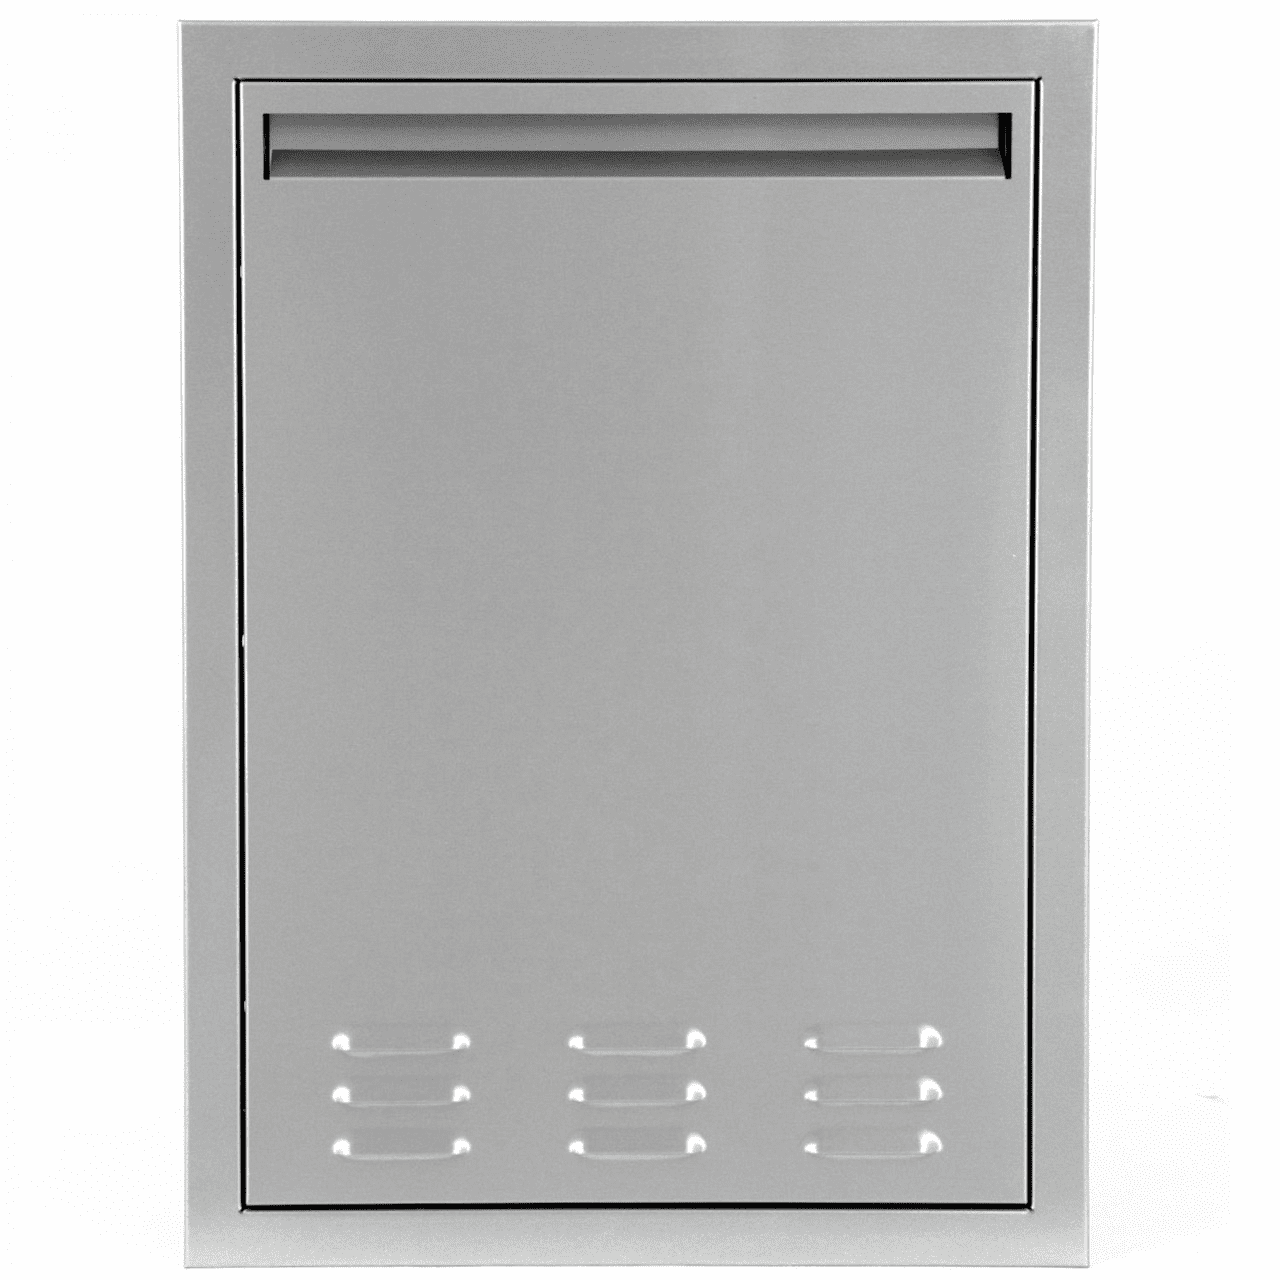 PCM 301 Series Propane Drawer Stainless